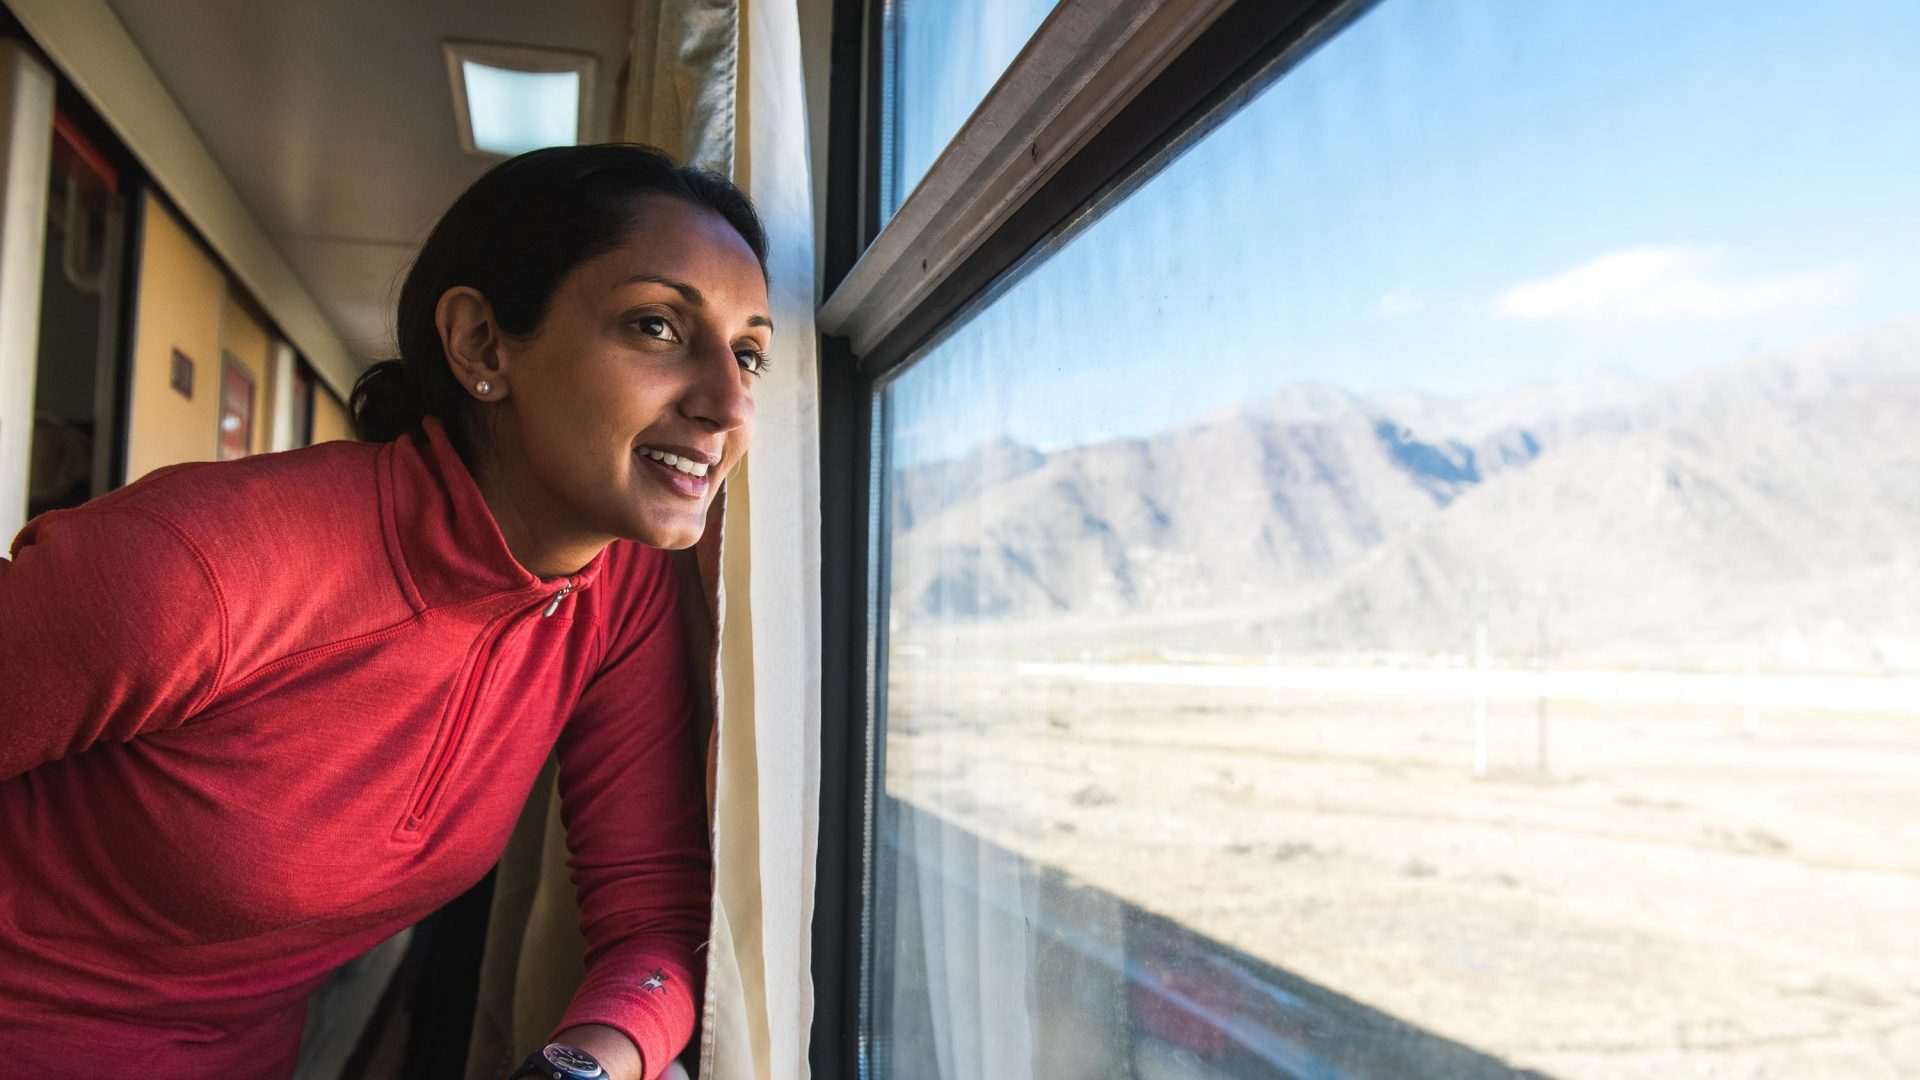 Writer Monisha Rajesh in China during her around-the-world train journey.